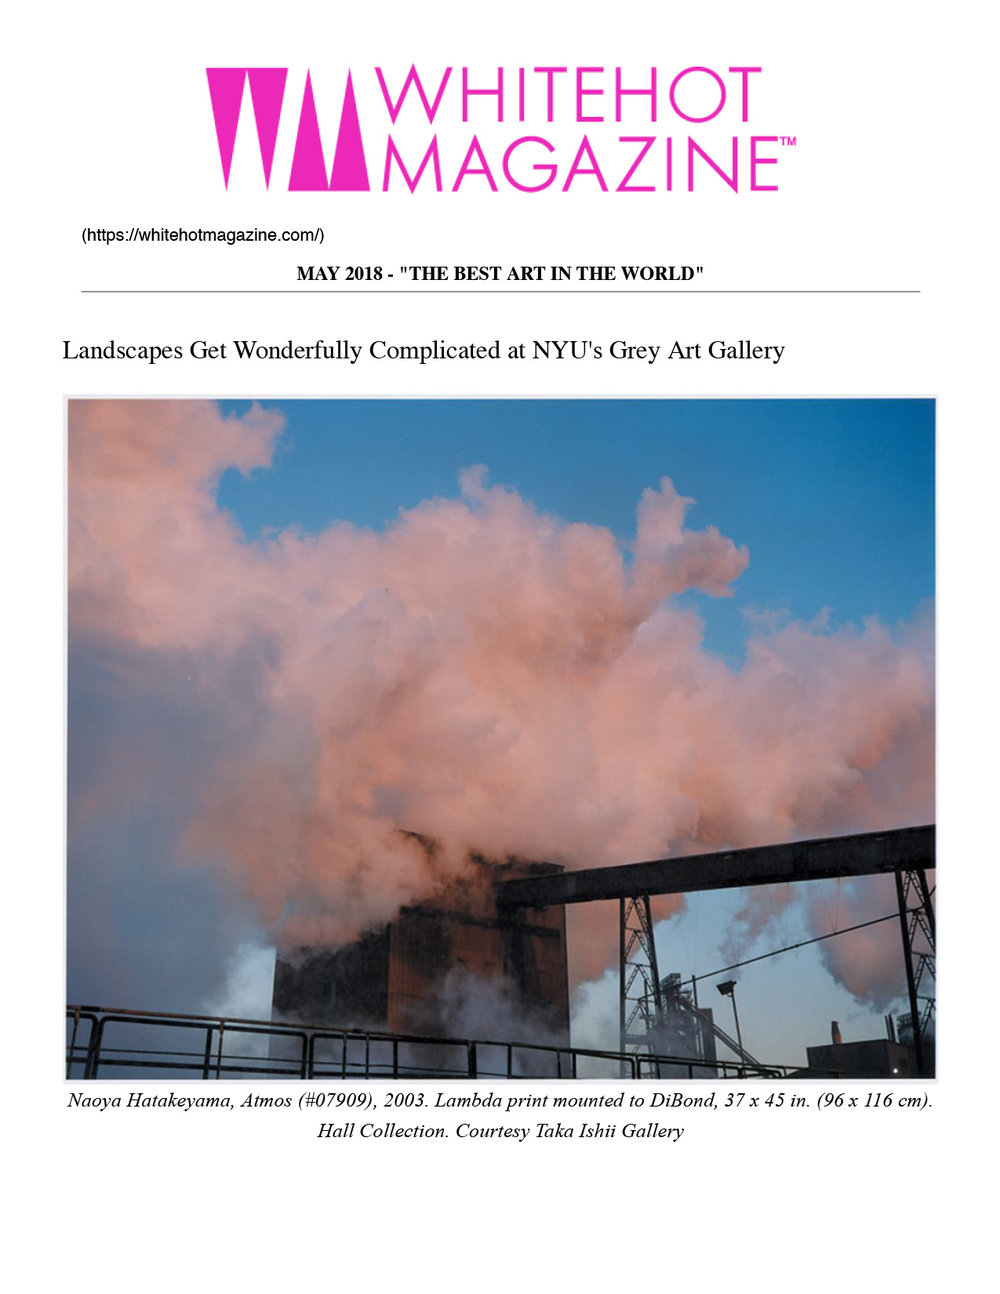 WM-_-whitehot-magazine-of-contemporary-...-Complicated-at-NYU's-Grey-Art-Gallery-1.jpg